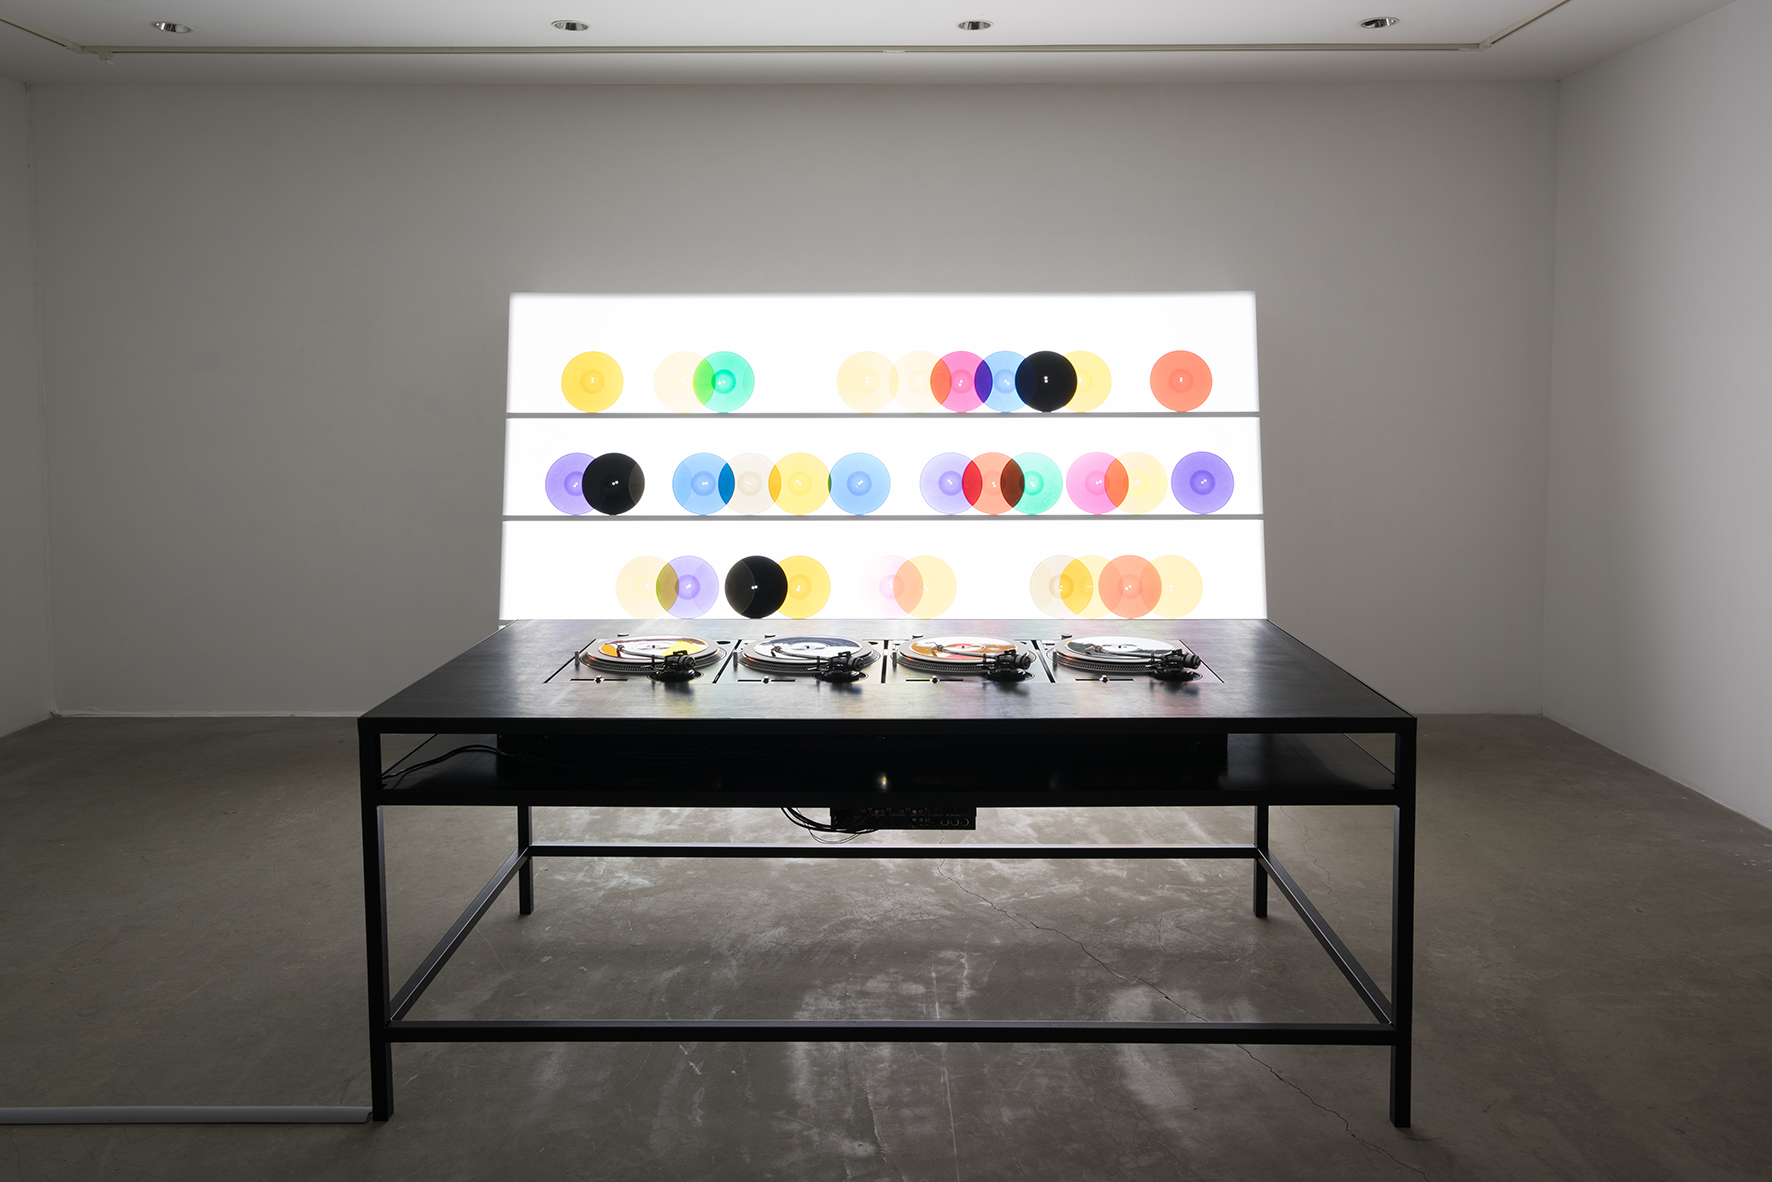 bausatz noto ∞ - color vinyl display, 1998/2015